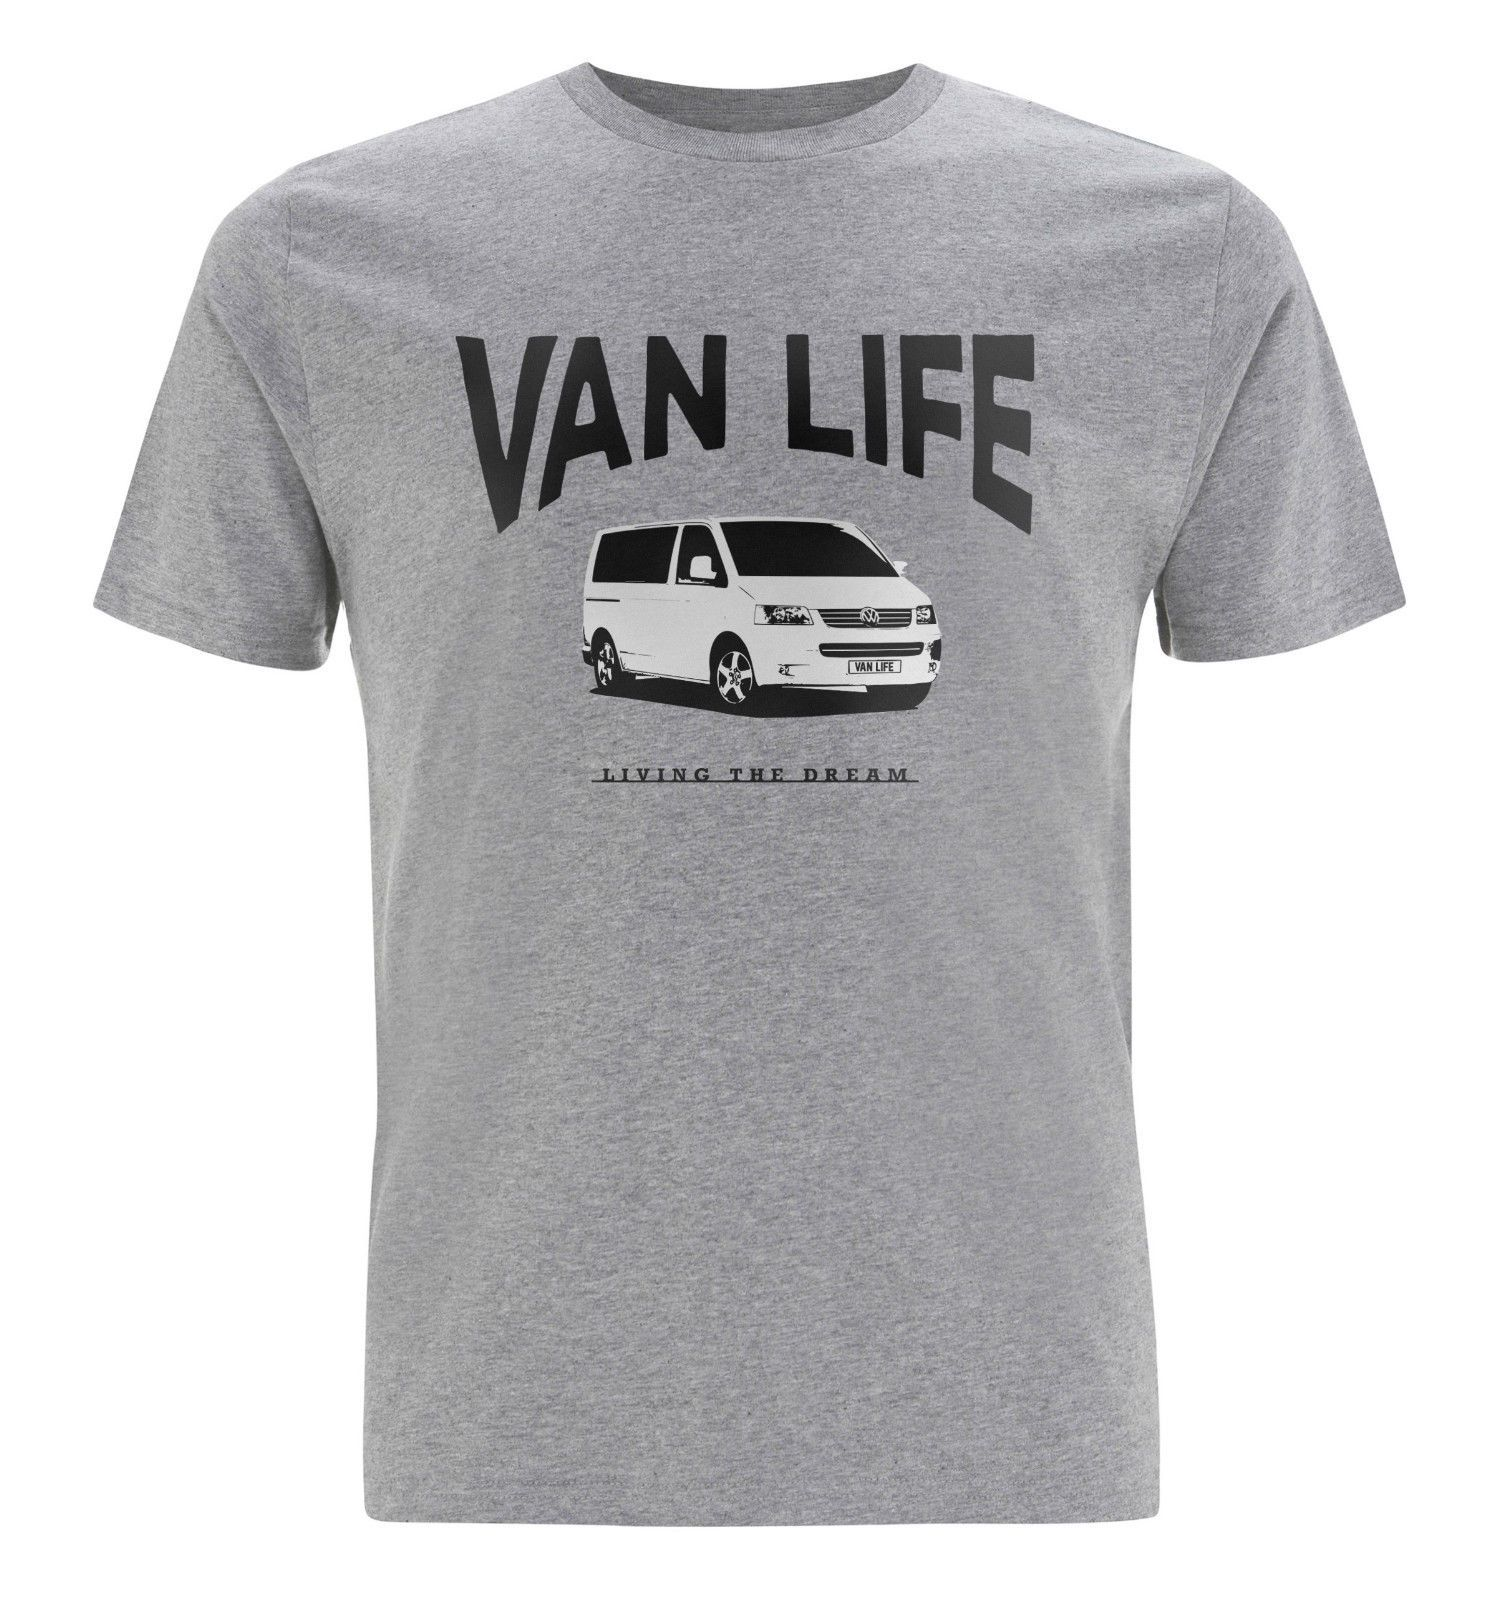 1e1542ec1 VAN LIFE 'VW T5' T-Shirt - Volkswagen, Transporter,Splitscreen, Camper,  Veedub in Clothes, Shoes & Accessories, Men's Clothing, T-Shirts | eBay